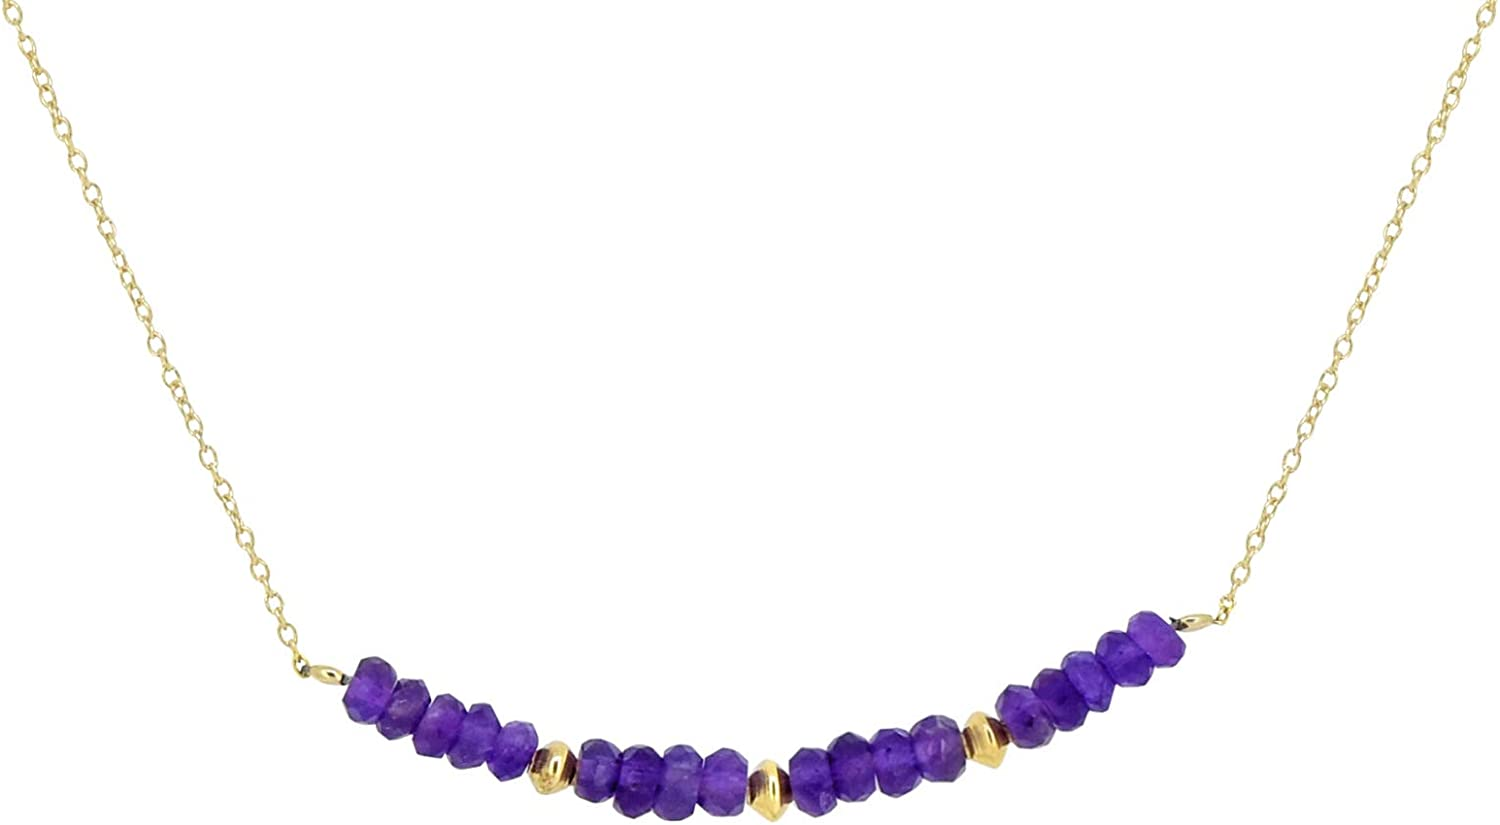 YoTreasure Many popular brands Amethyst Solid 925 Sterling Gold Chain Free shipping on posting reviews Silver Plated